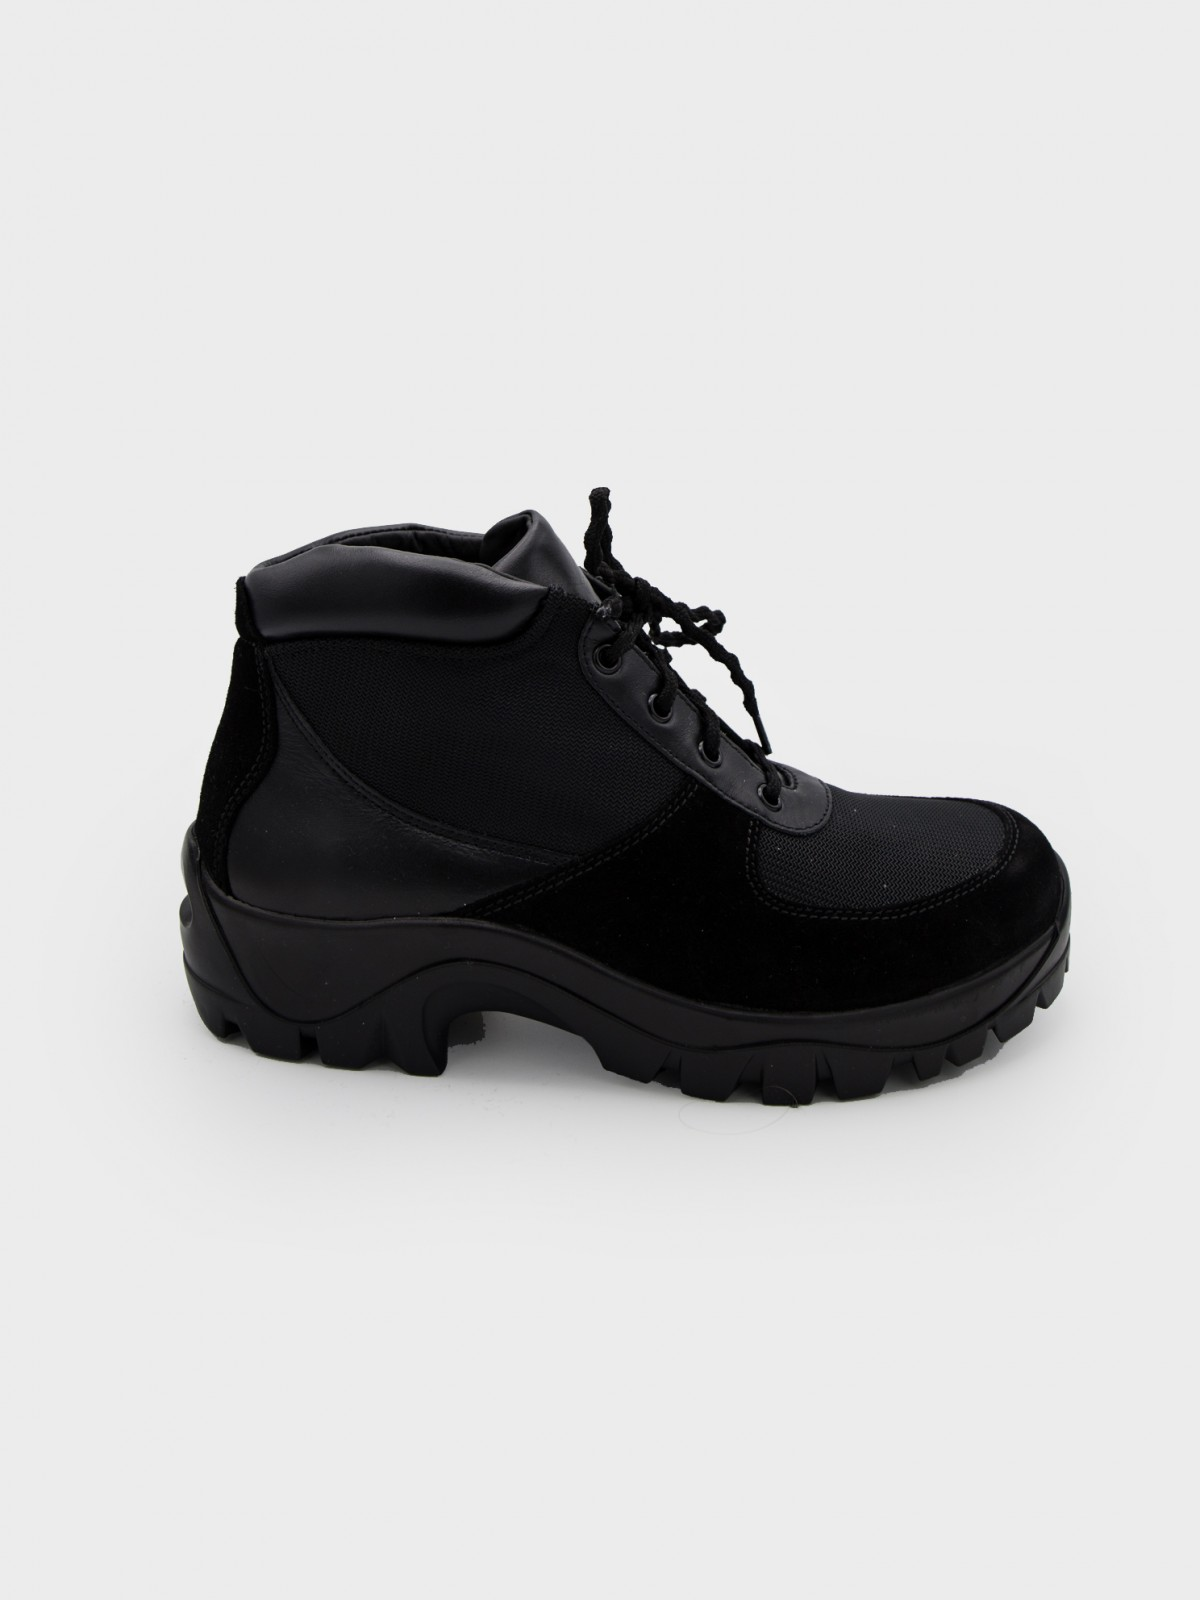 Our Legacy Nebula Boots in Black